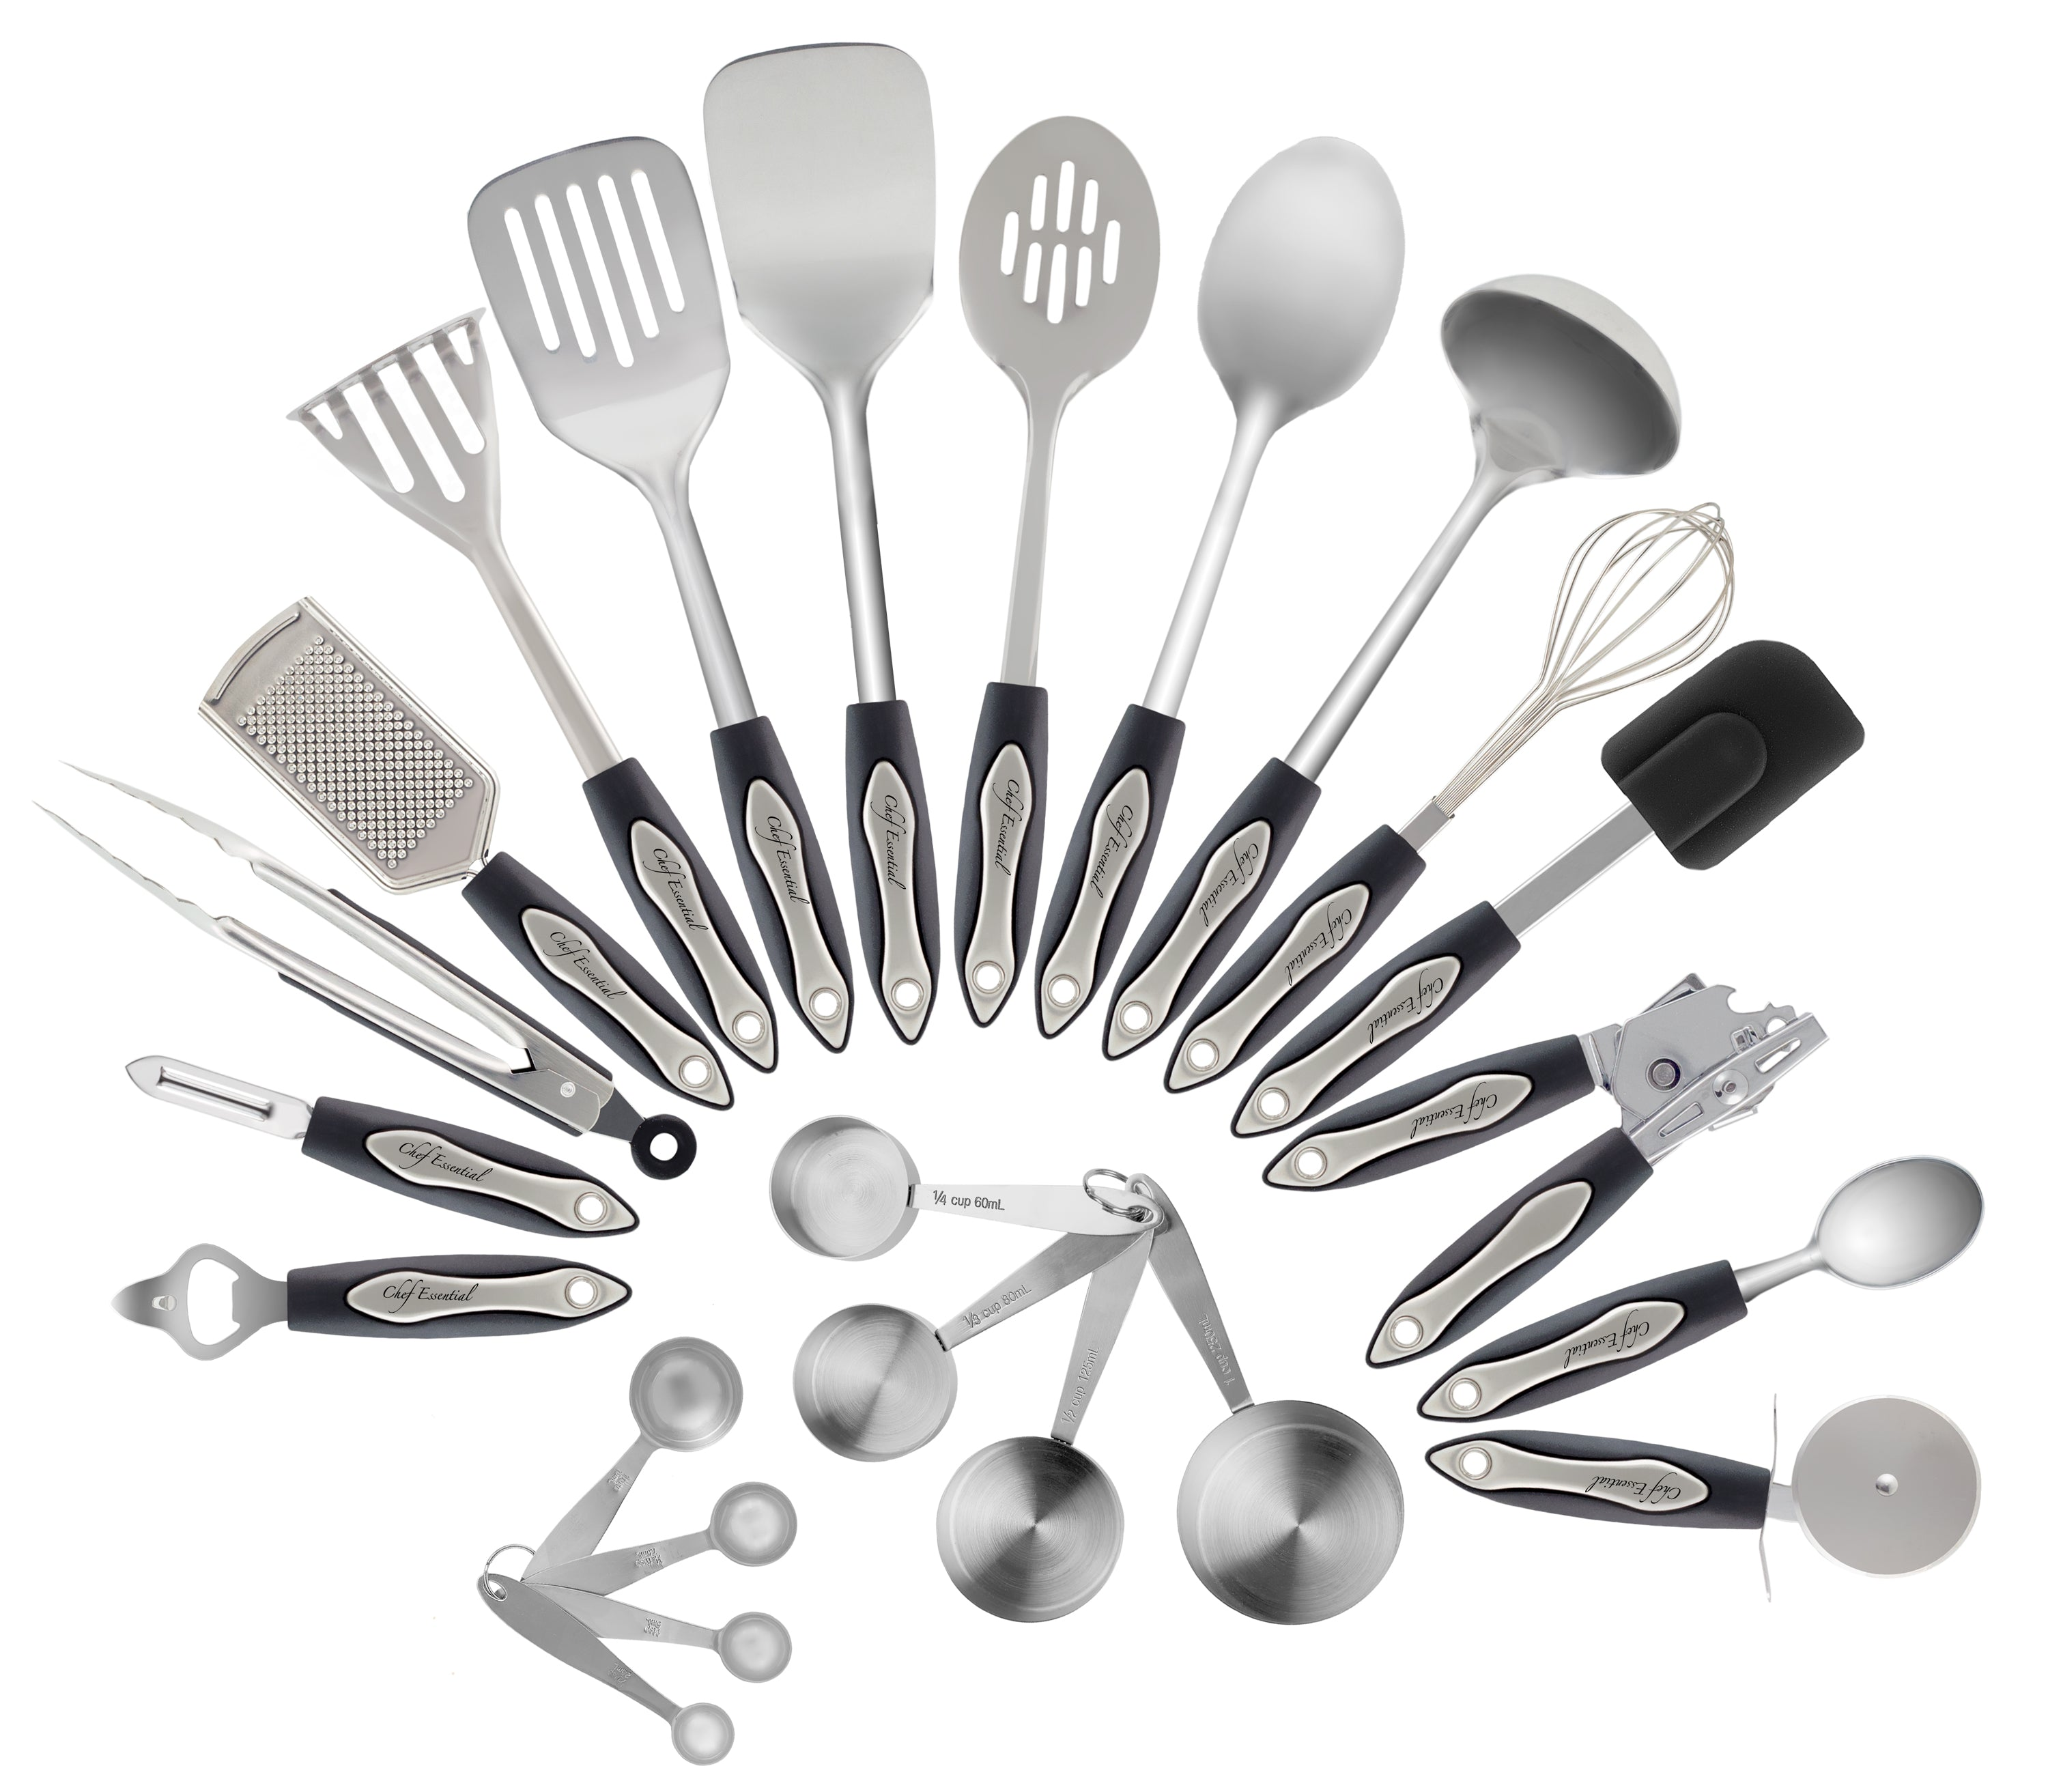 23-Pc Kitchen Utensil Set, Premium Quality 304-Grade Stainless Steel ...